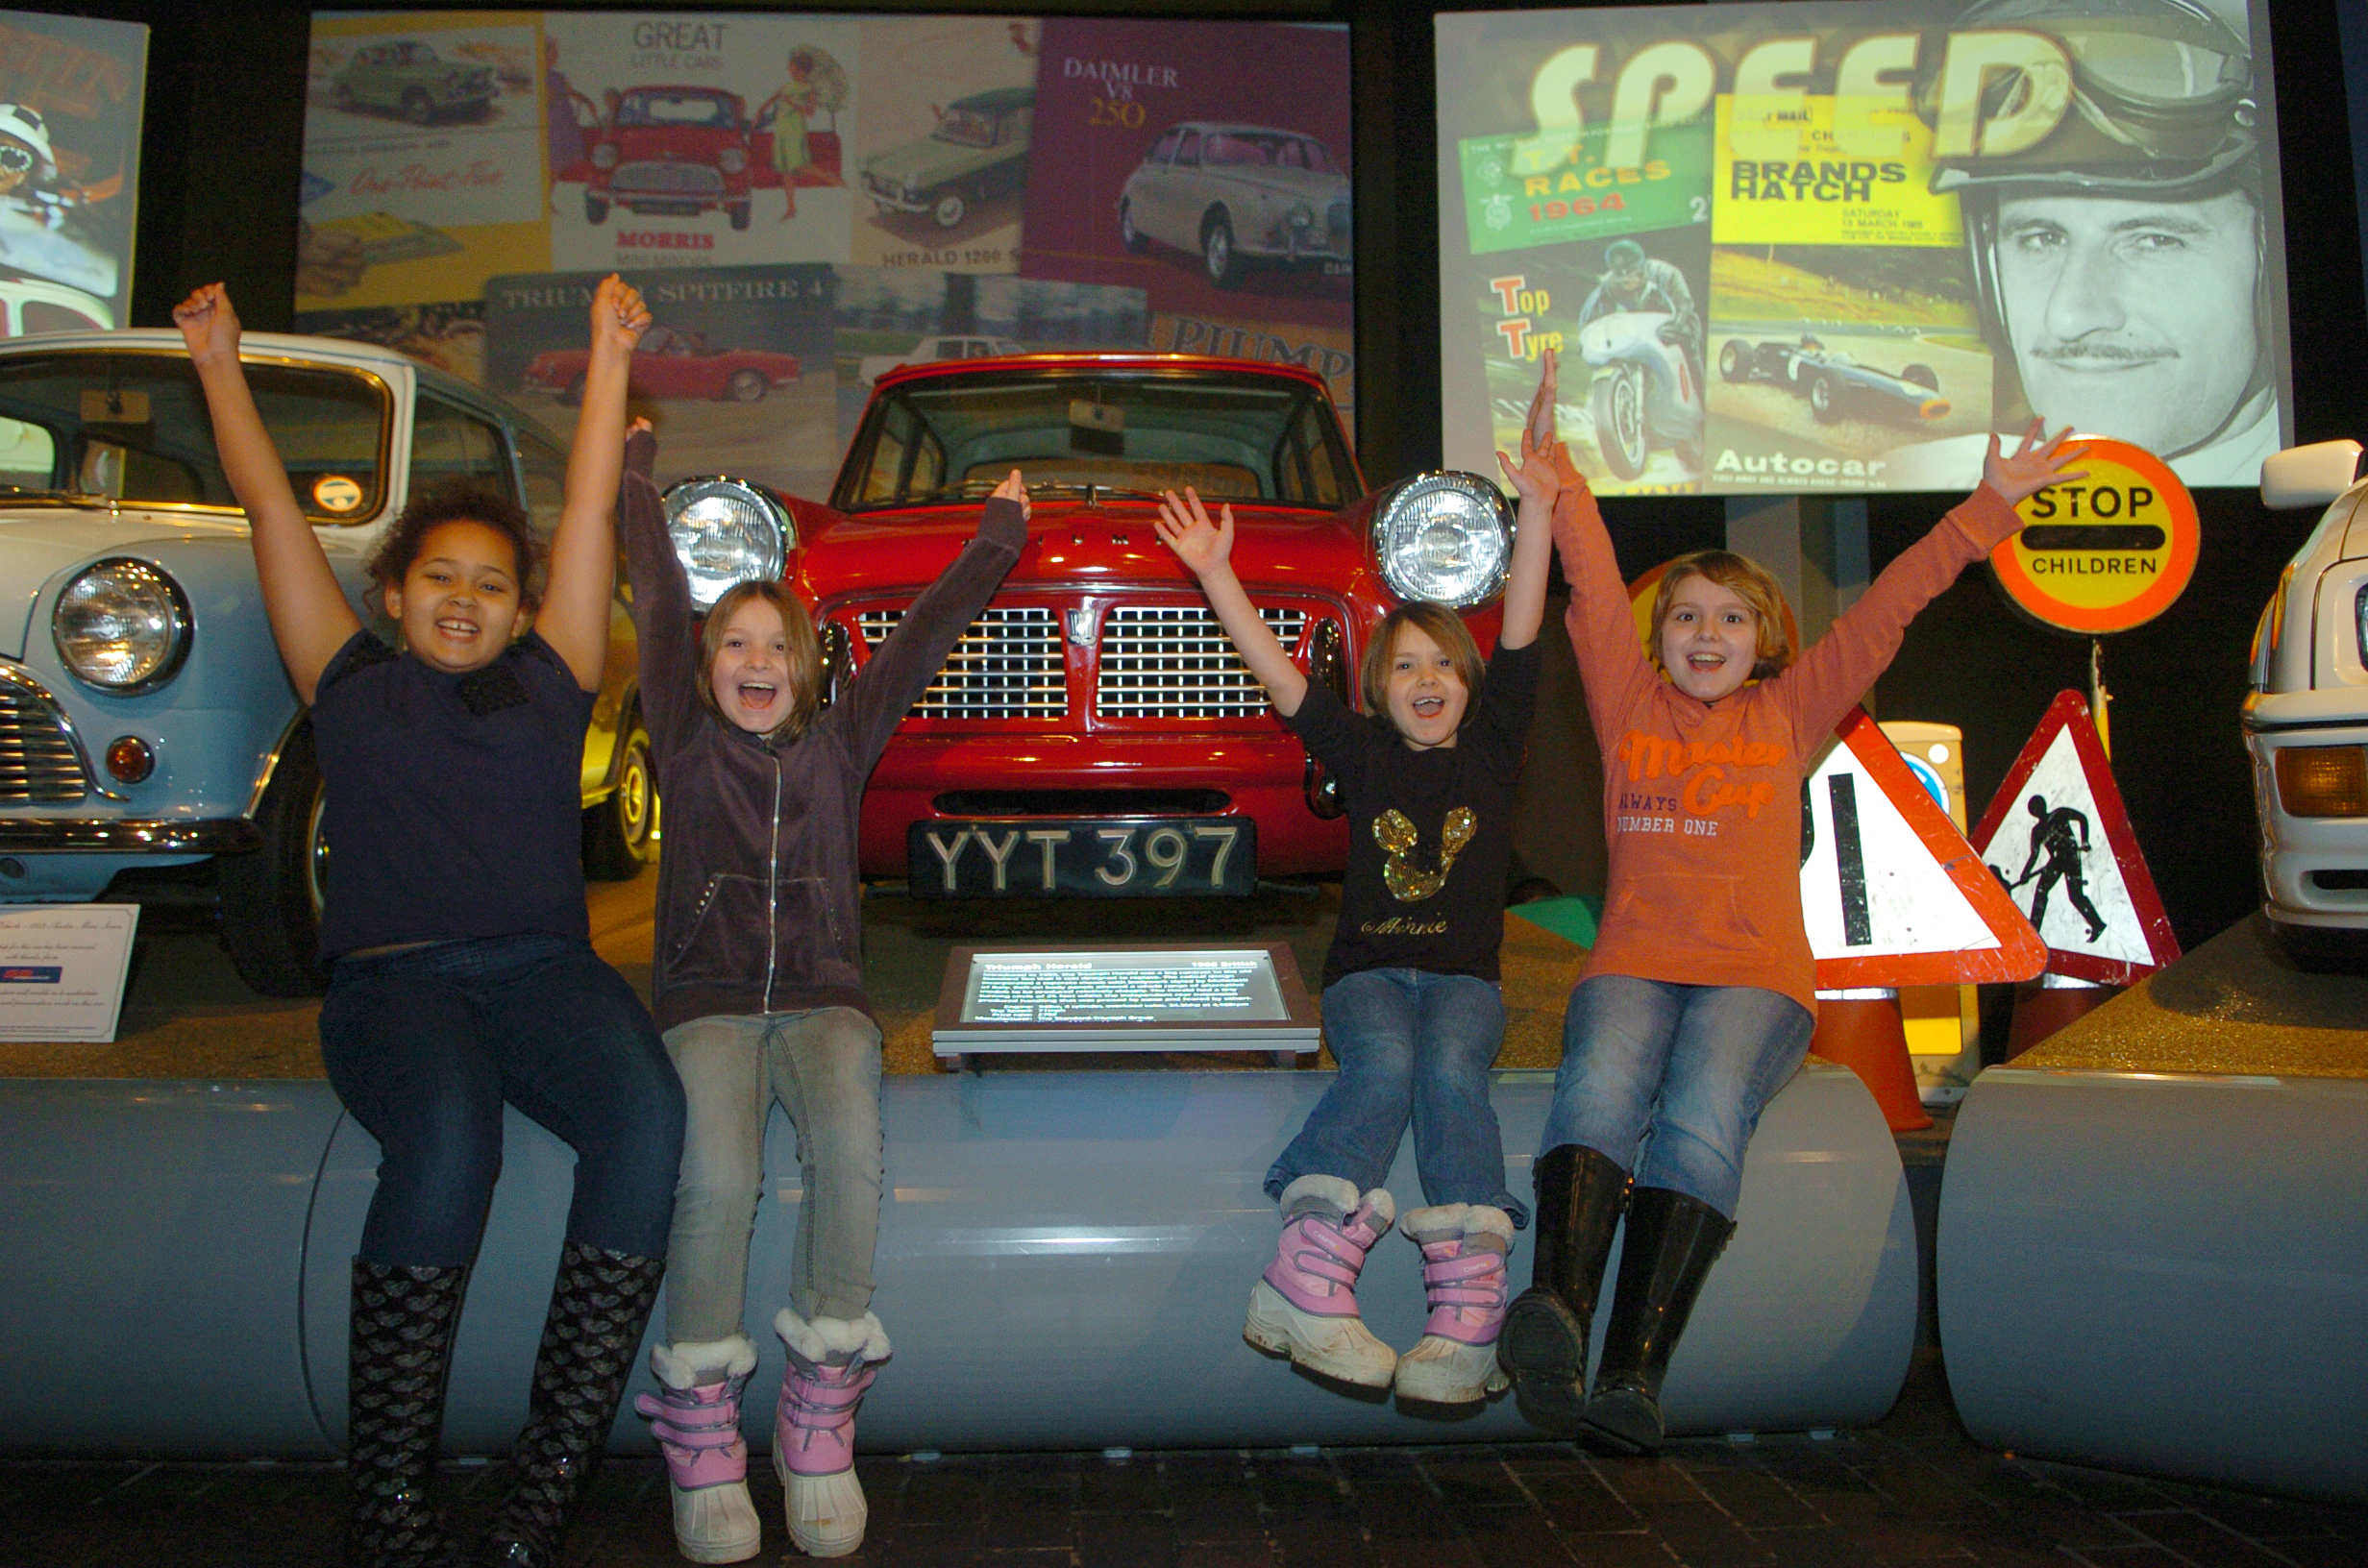 blog/196/Kids in cars_visiting Beaulieu museum